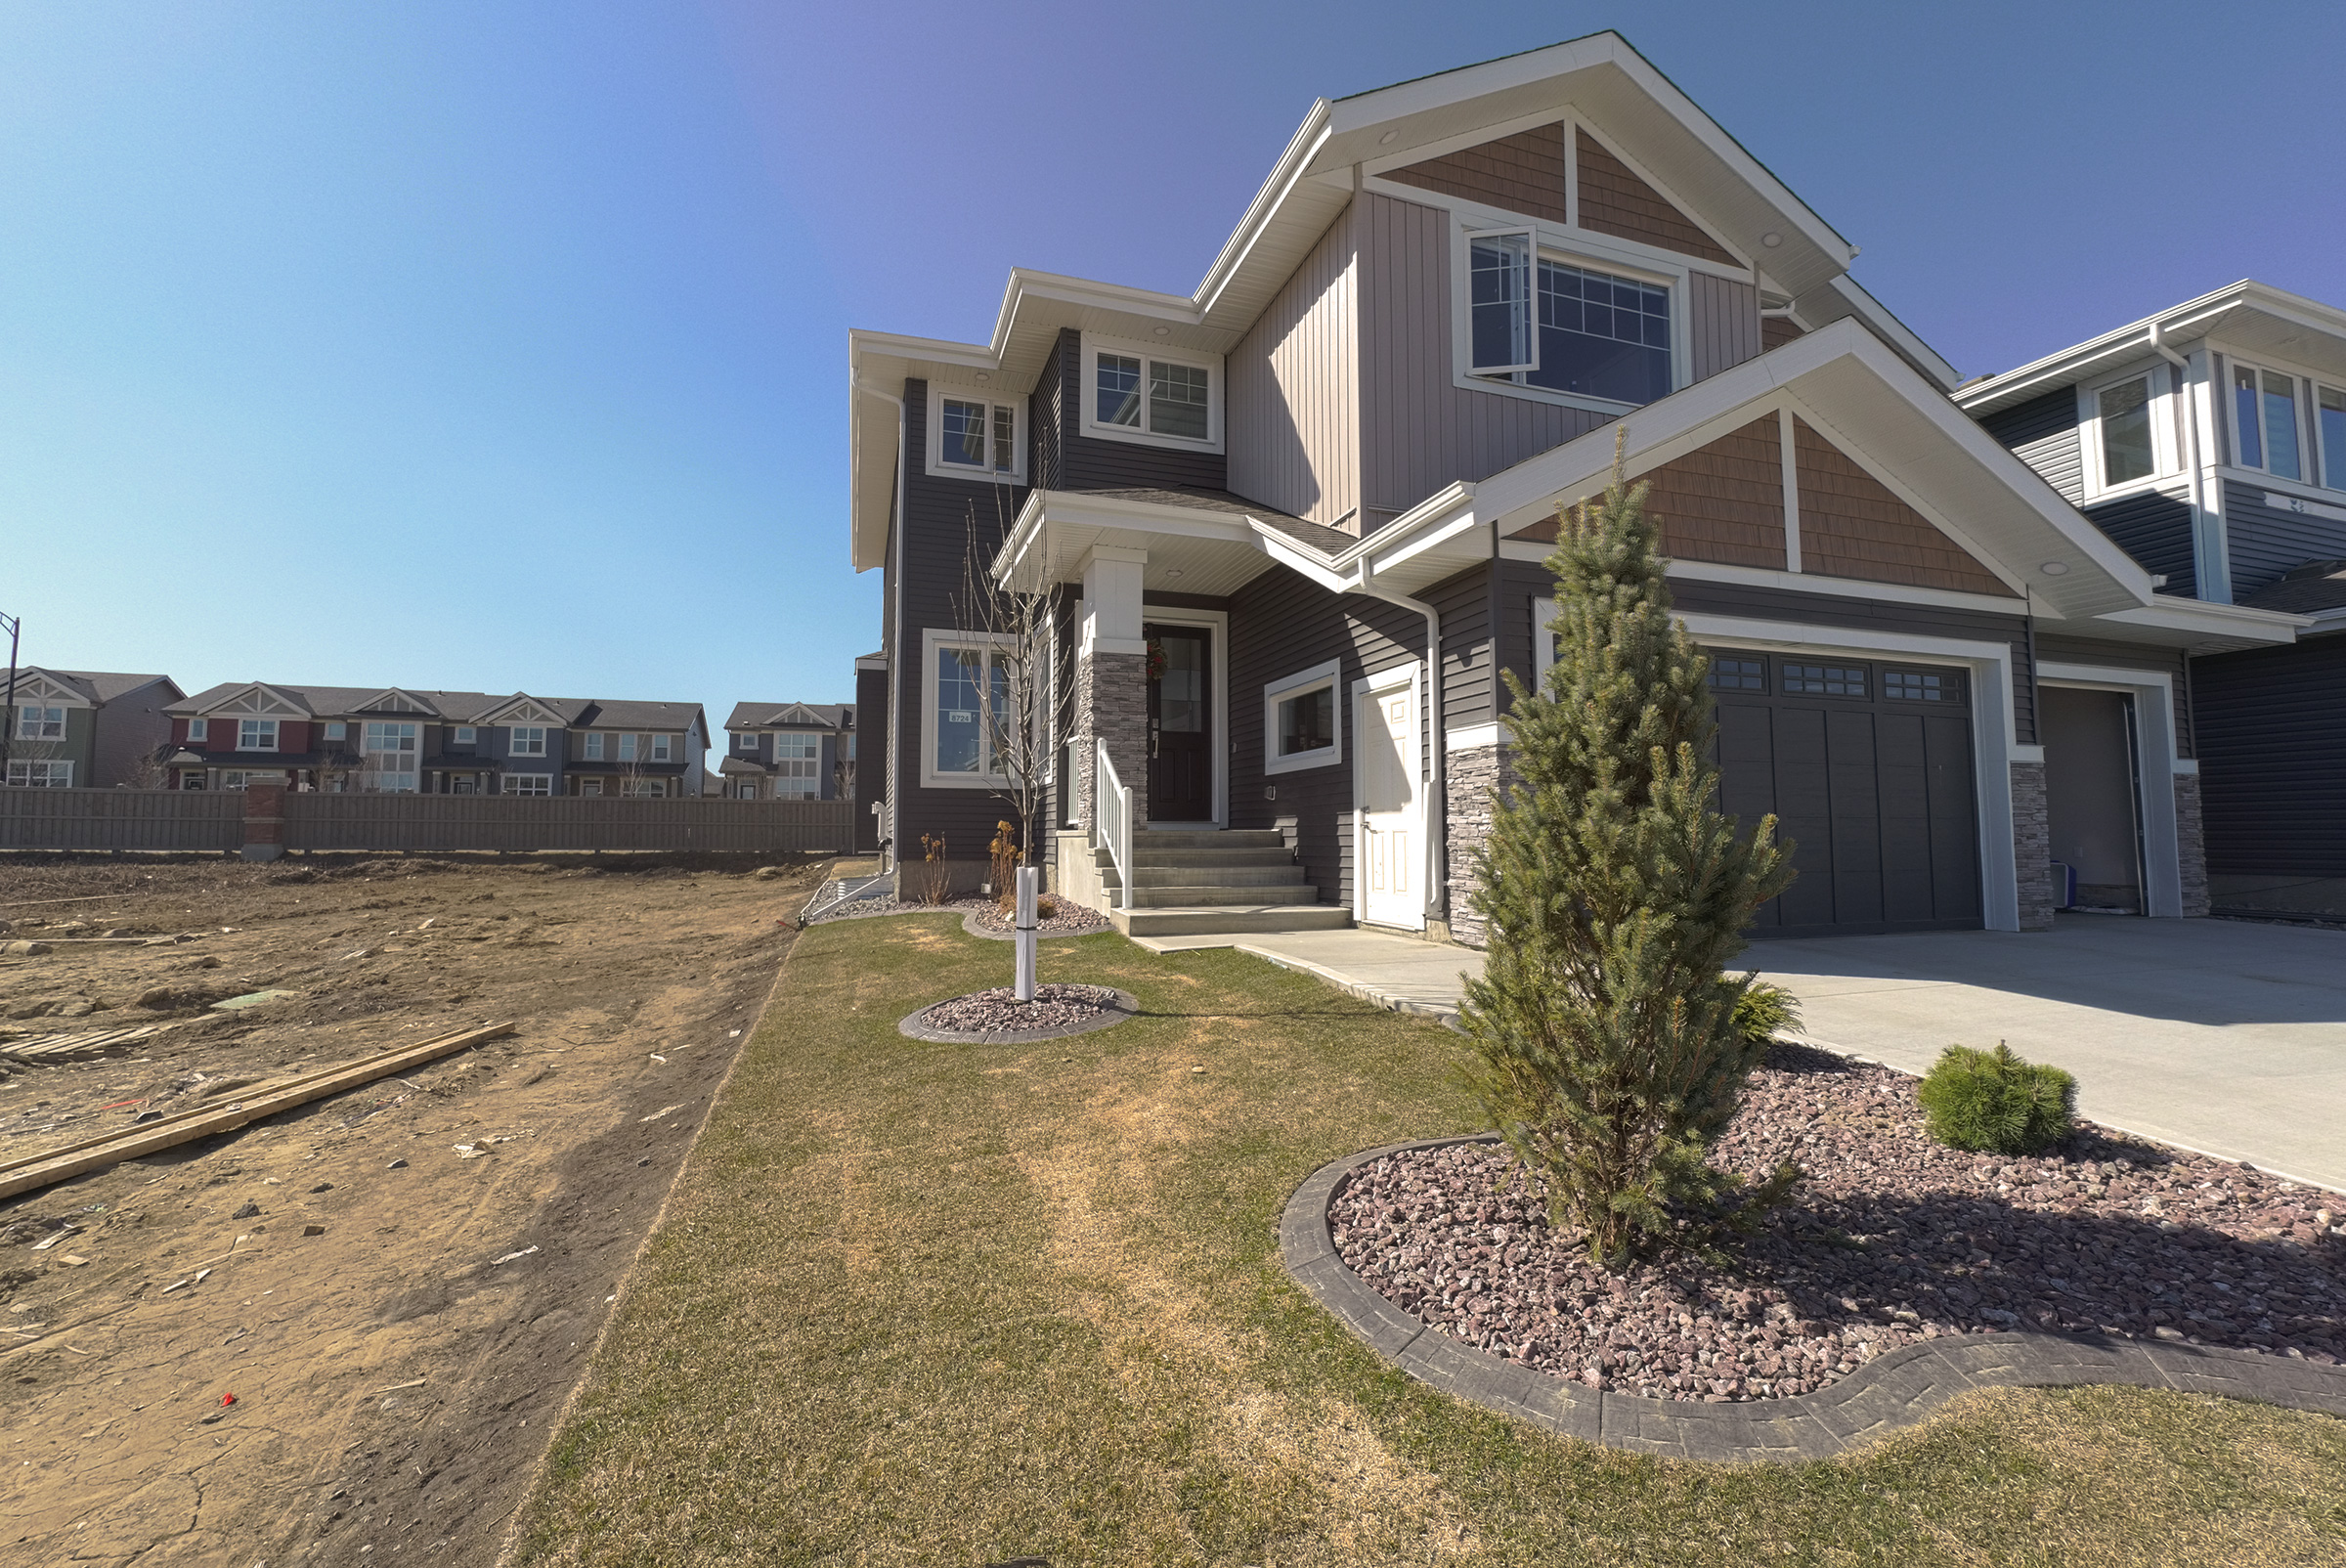 2 story Rosenthal 3080 sqft. triple garage at the front